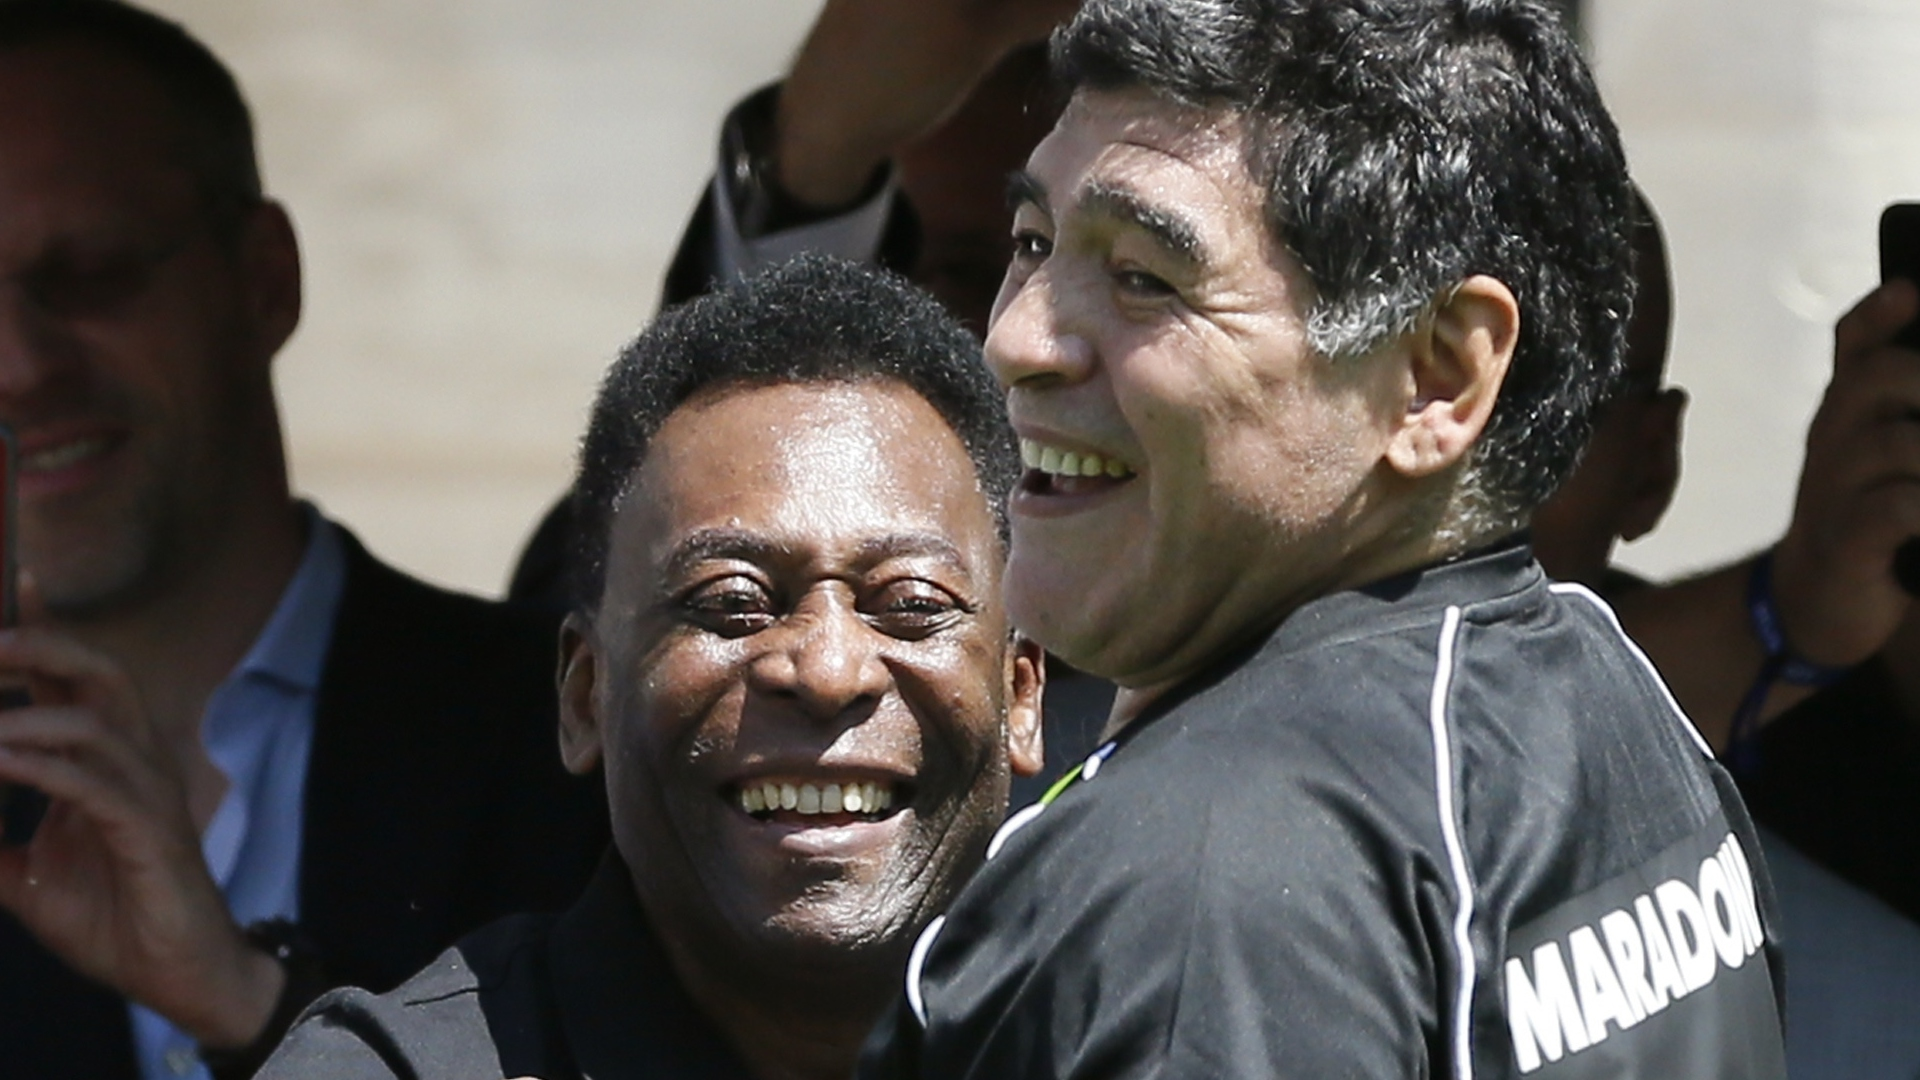 Diego Maradona dies: A great friend and a legend – fellow great Pele offers emotional tribute